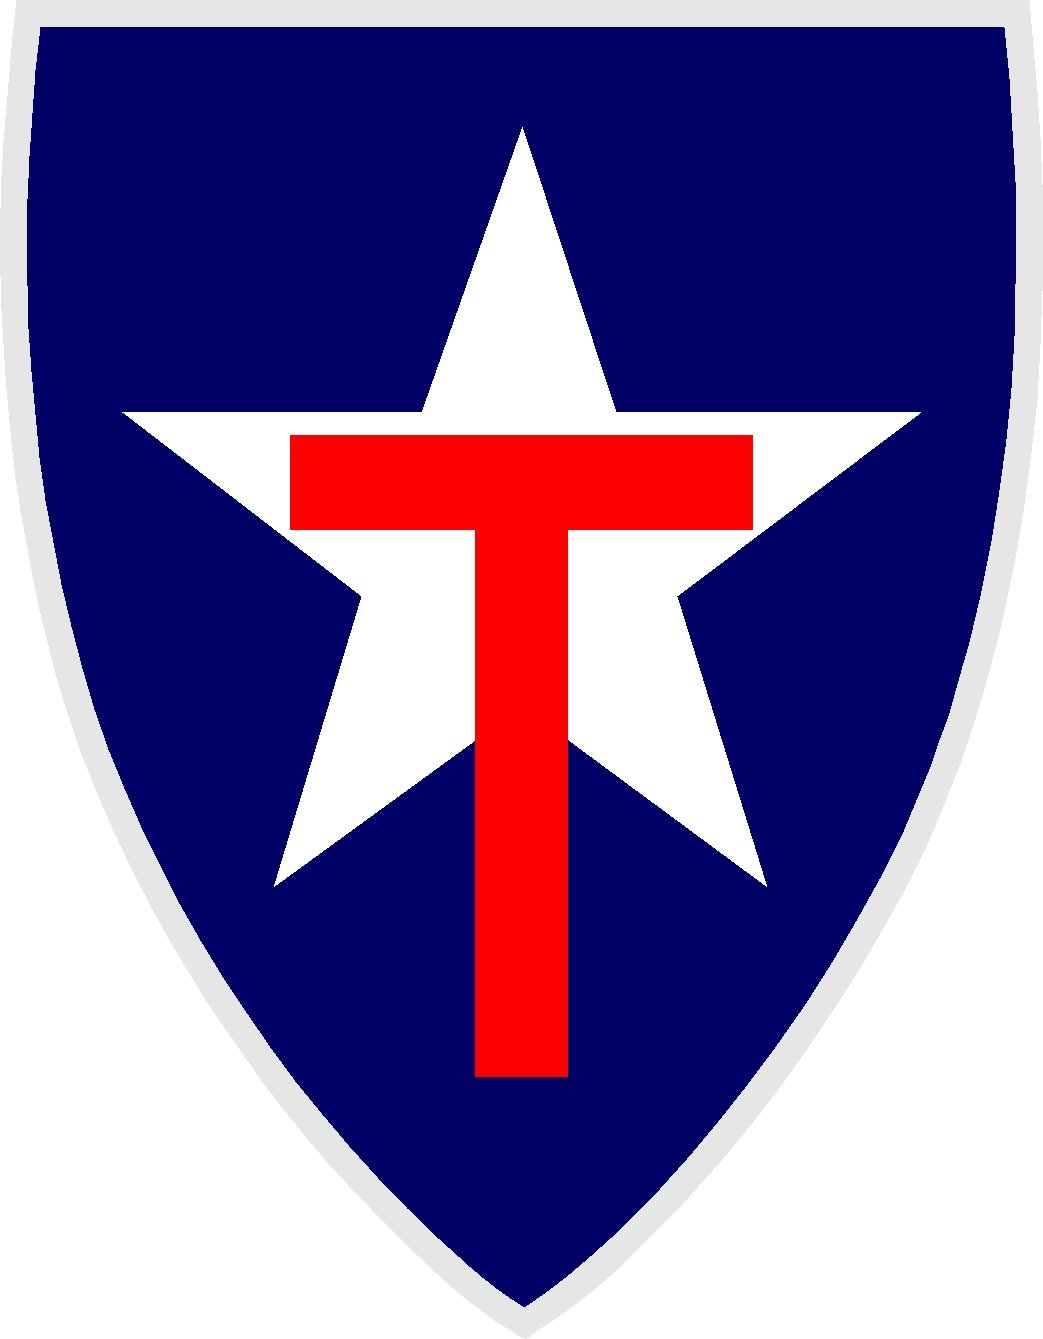 """TEXAS STATE GUARD FULL COLOR VINYL DECAL STICKER APPROX 3.77"""" TALL X 2.9"""" WIDE"""